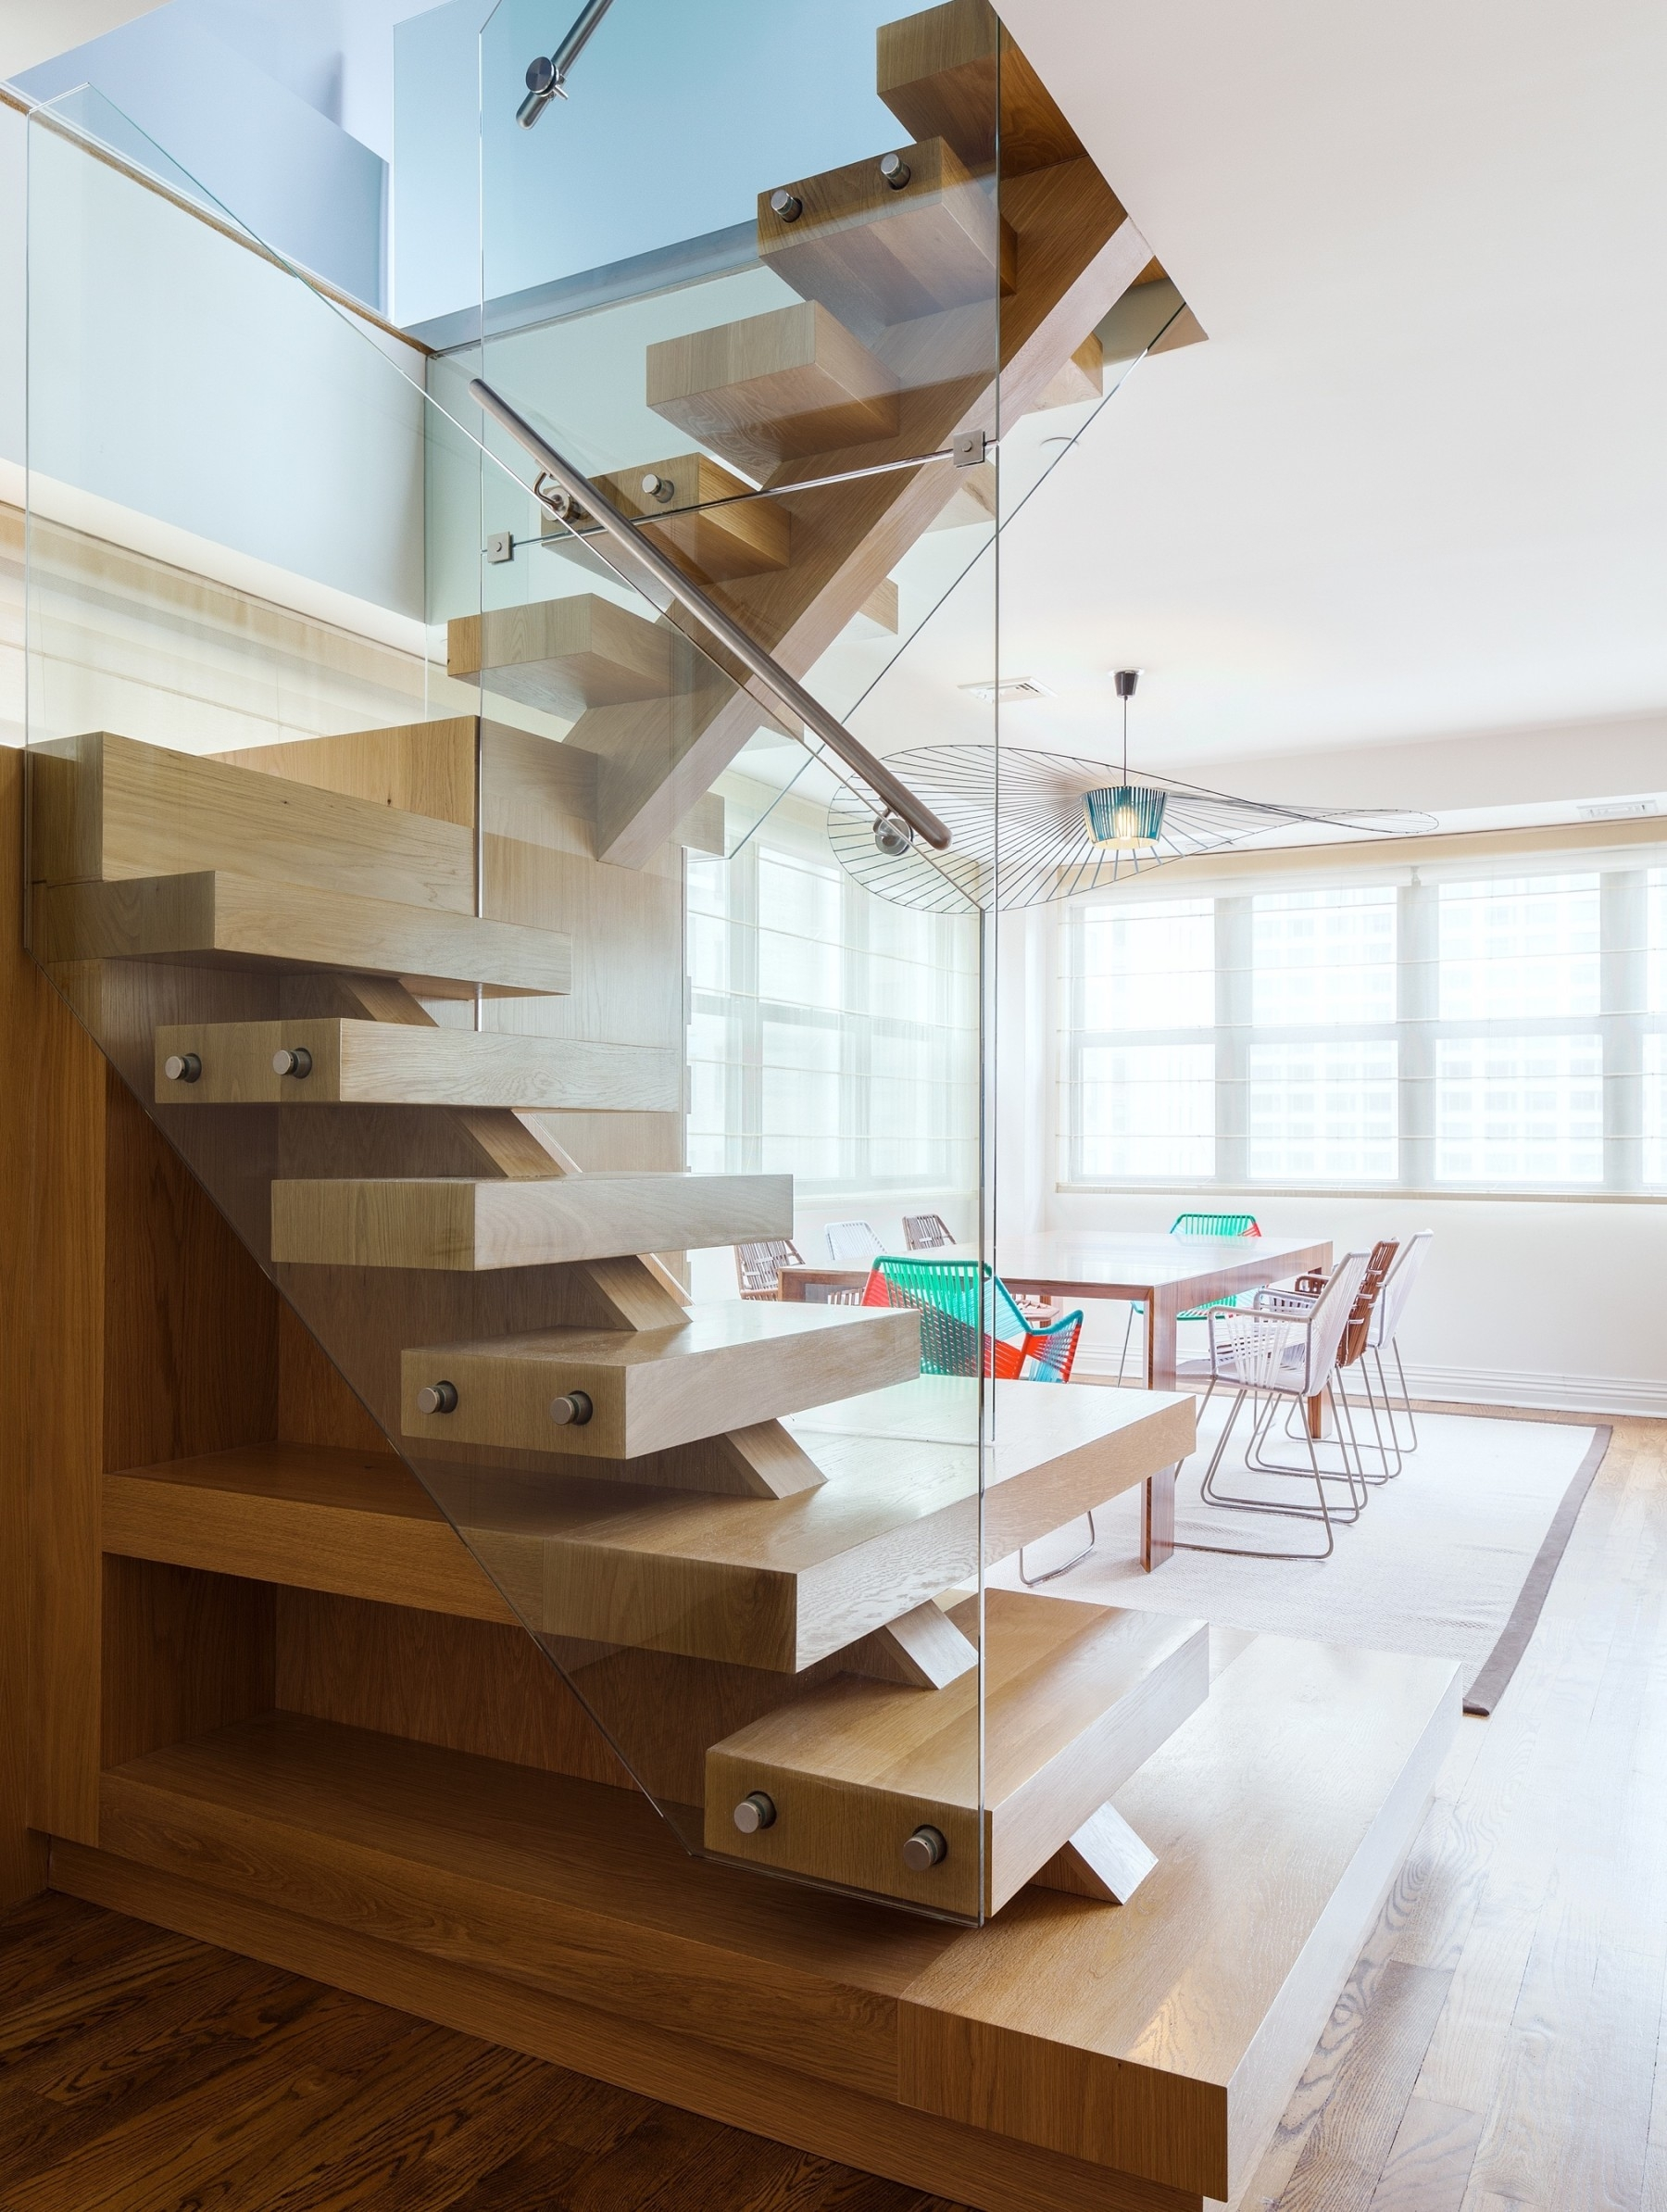 Spiral Staircase Alternatives For Your Nyc Duplex Renovation | 6 Foot Spiral Staircase | Tread Depth | Stair Kit | Metal | Building Code | Hayden Gray